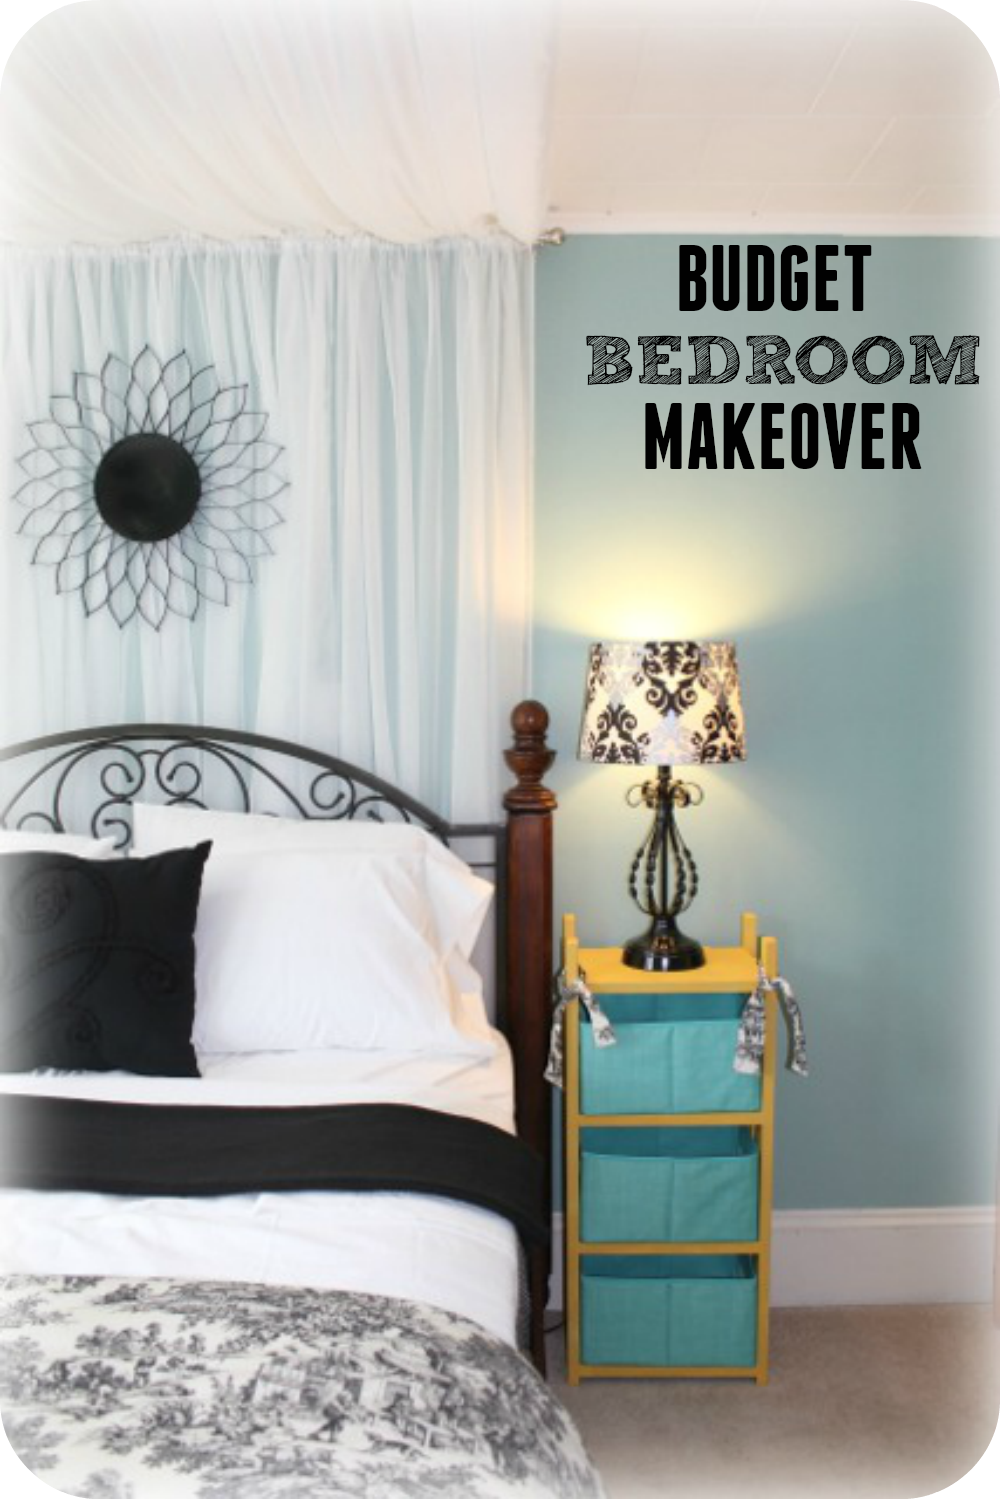 Amazing Wondering How To Decorate Your Bedroom For Less? Here Is A Beautiful Bedroom  Makeover For Photo Gallery